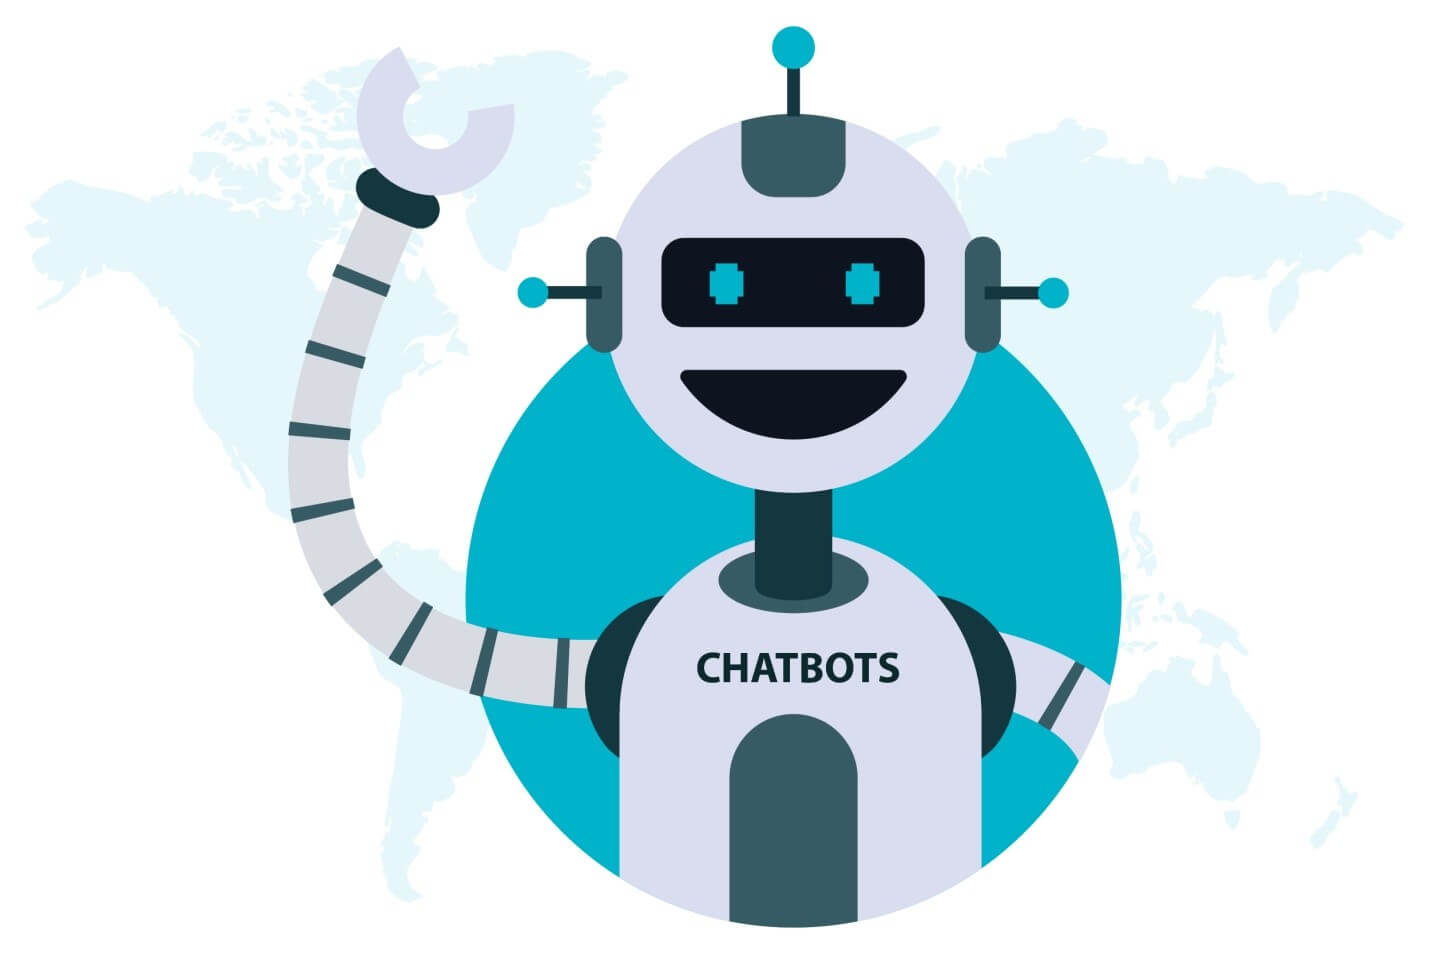 chatbots-as-personal-assistants